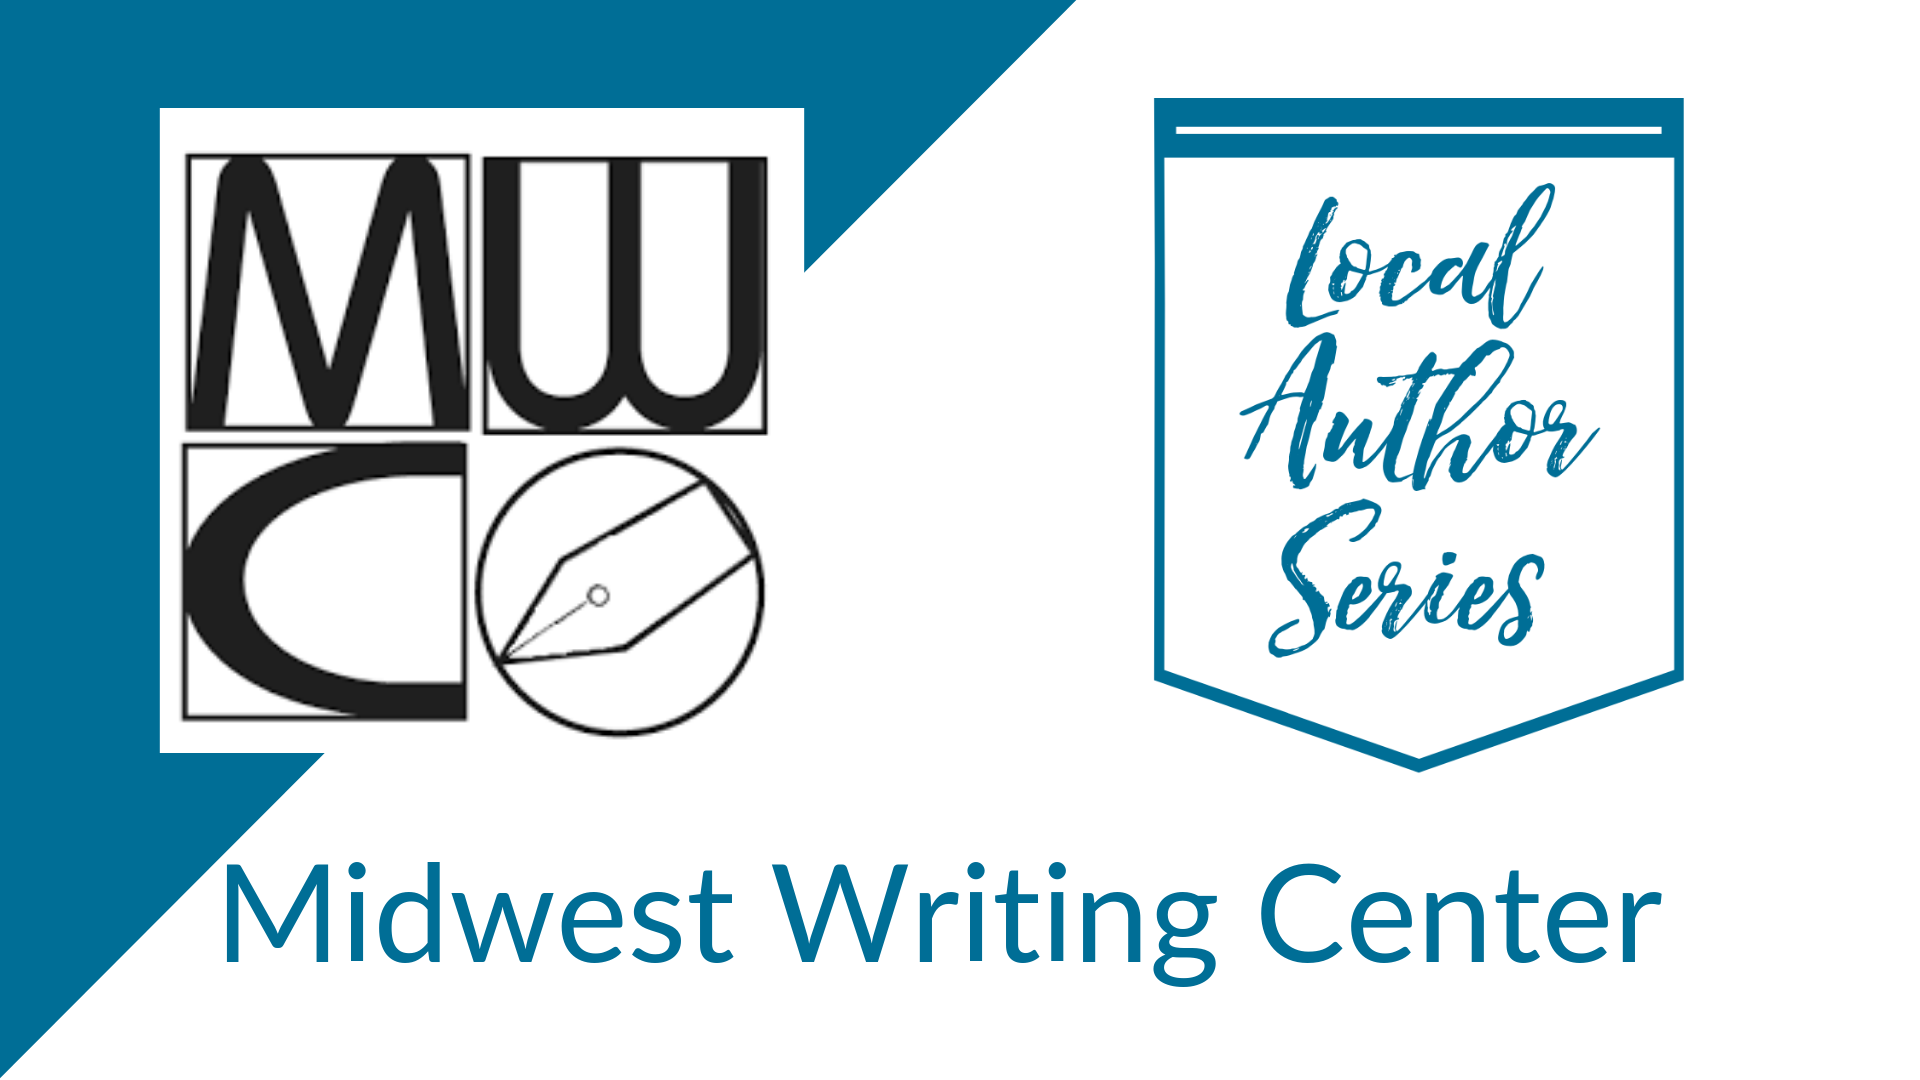 Local Author Series: Midwest Writing Center